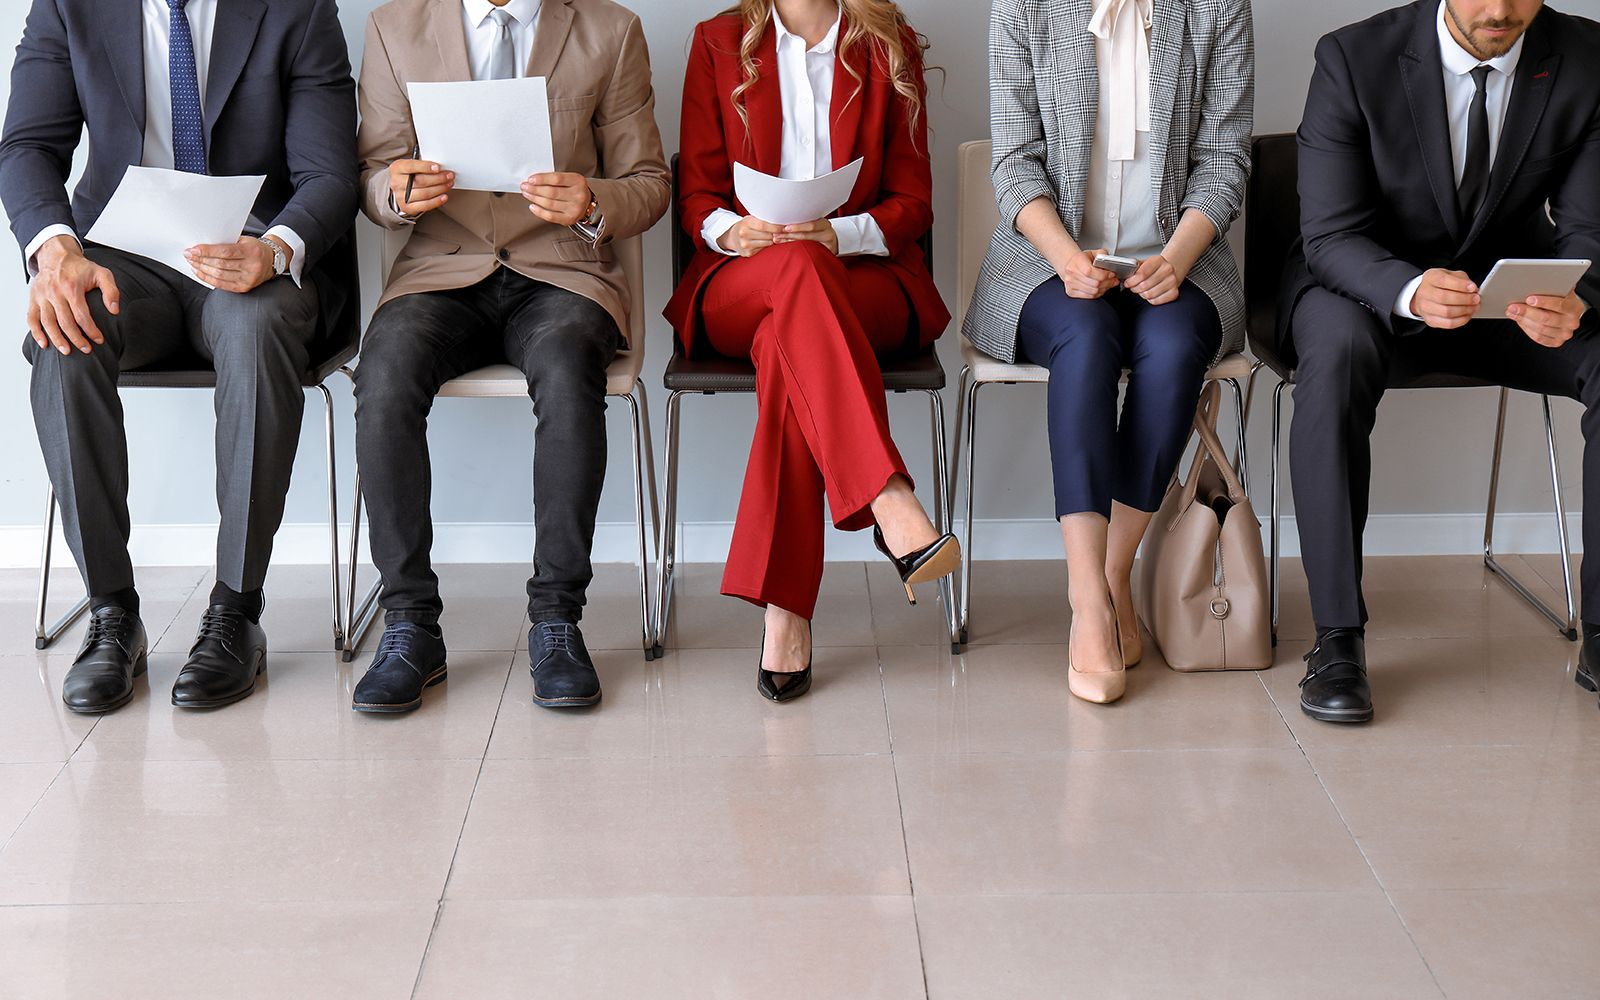 The Standoff -- Job Openings Vs. Job Seekers -- And Its Impacts